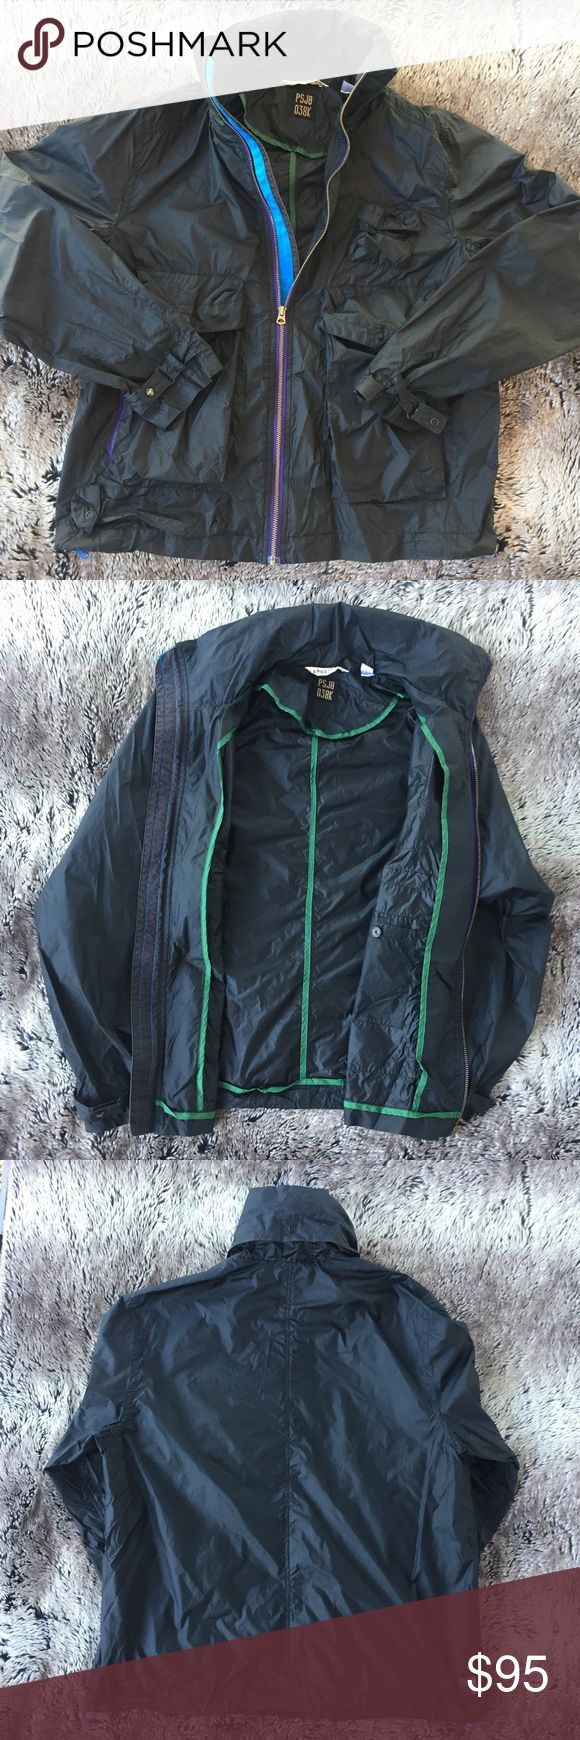 """Paul Smith Men's Raincoat Nice and Thin this Hooded Nylon 6 Pocket rain jacket is great! Black with purple /green accents. Hideaway Hood. Measurements: Top to Bottom 27"""" Sleeves 26.5"""" Shoulder to Shoulder 19"""" Like New. Great Condition. Paul Smith Jackets & Coats Raincoats"""